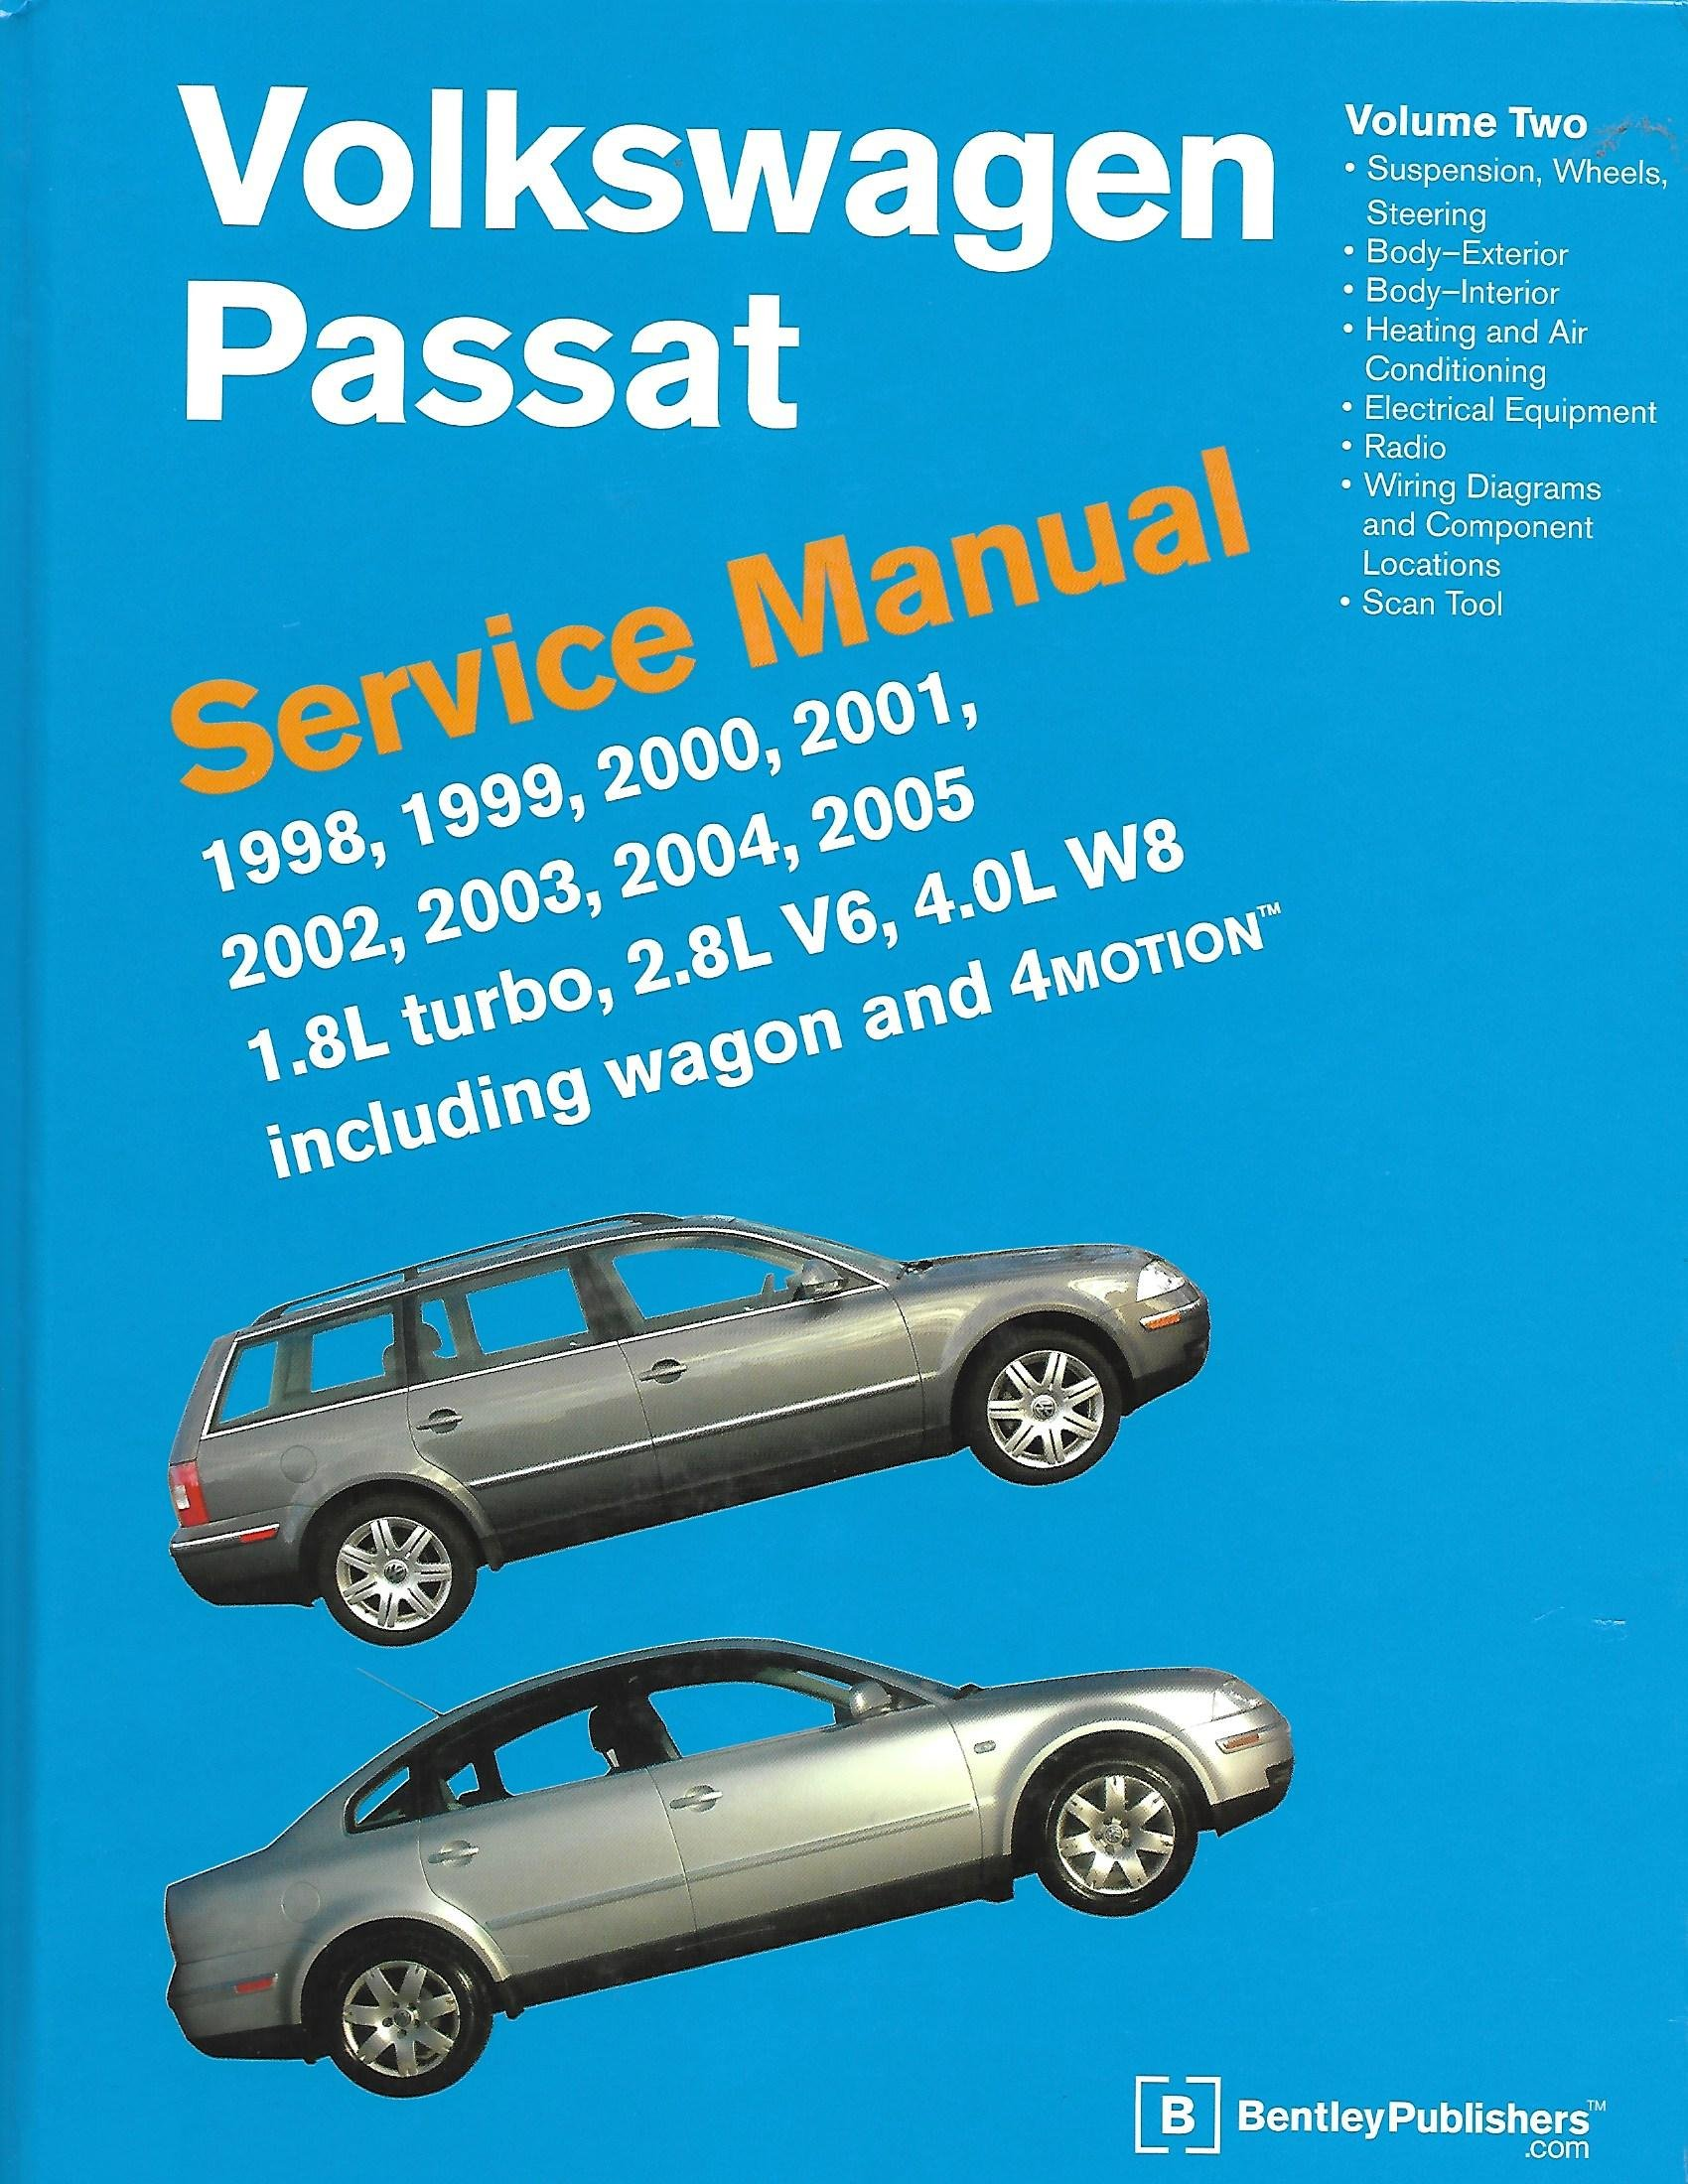 Volkswagen Passat- Service Manual: VOLUME 2: 1998, 1999, 2000, 2001, 2002,  2003, 2004, 2005 1.8 turbo, 2.8L V6, 4.0L W8 including wagon and 4MOTION:  Bentley ...